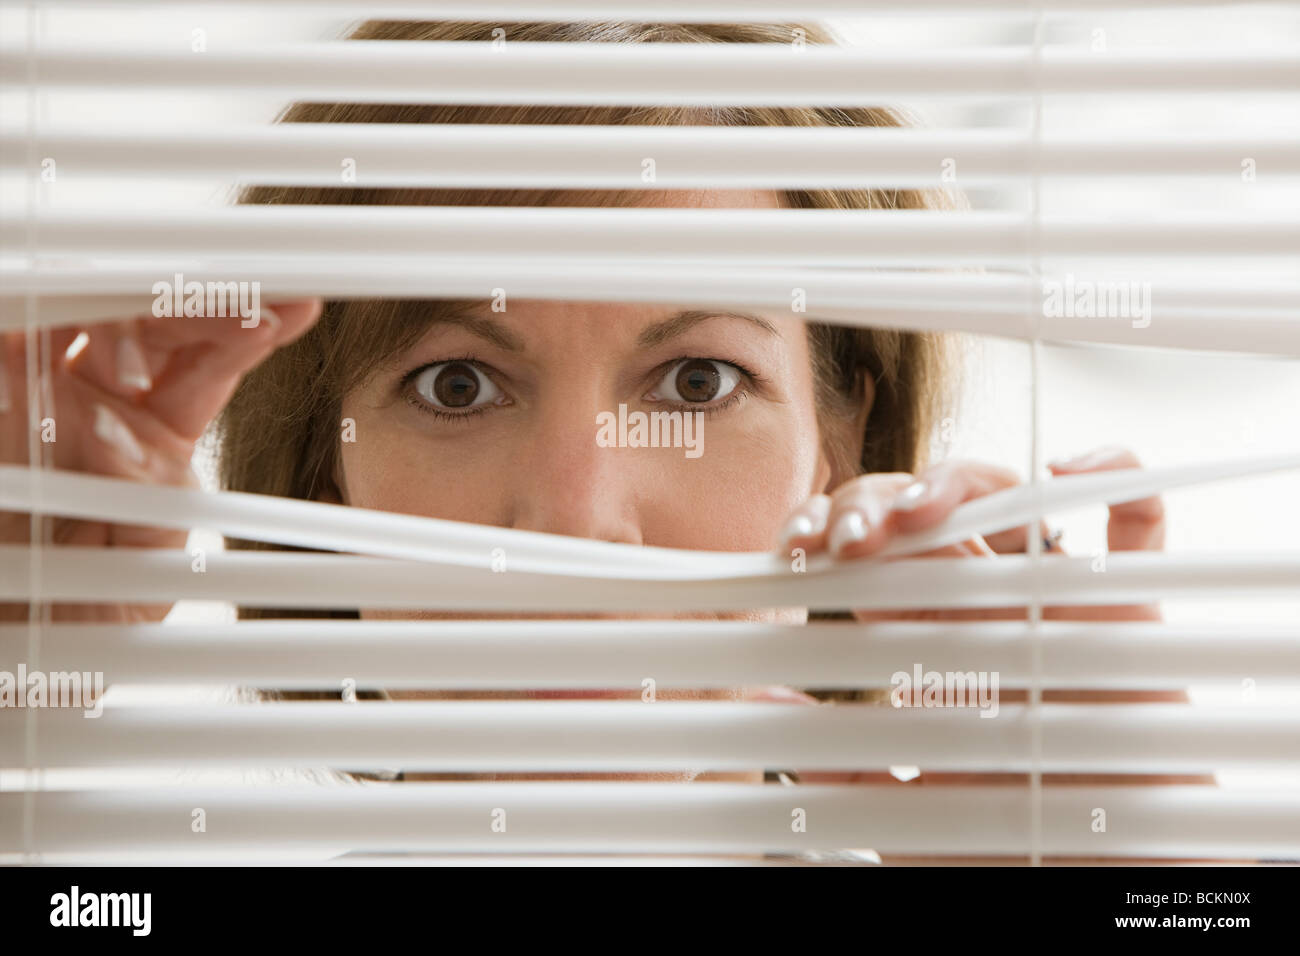 Businesswoman looking through blinds - Stock Image